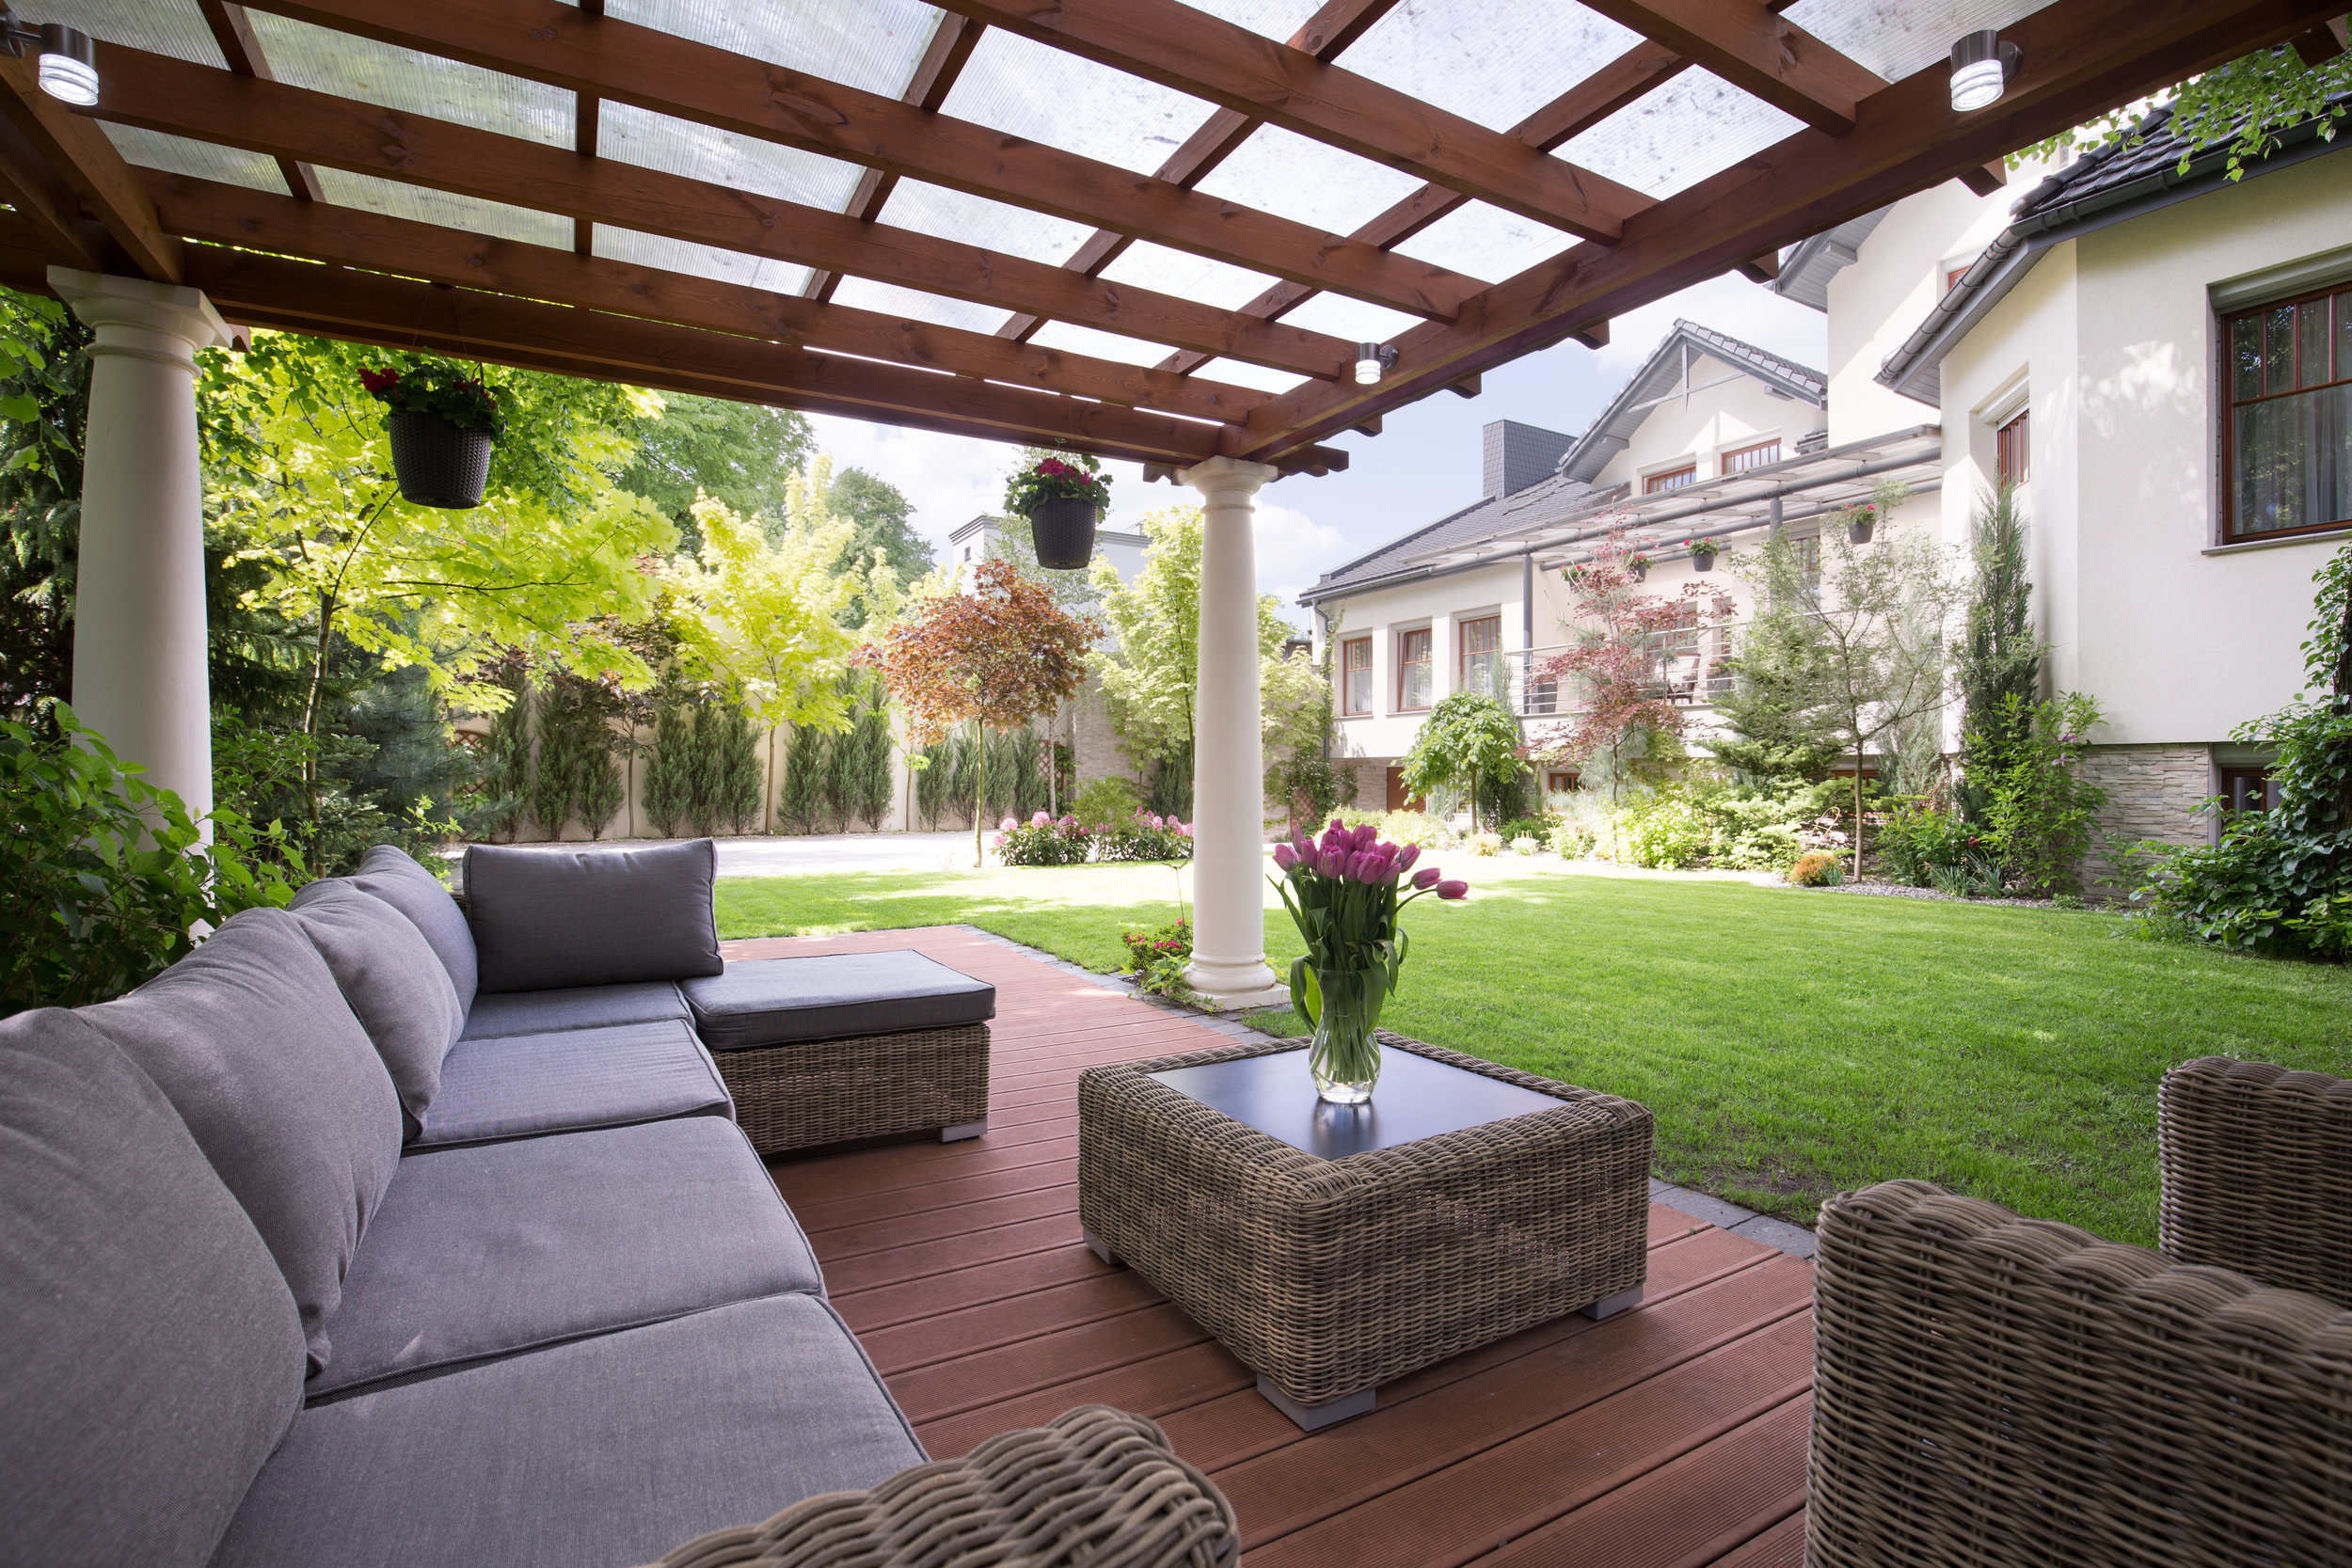 Luxury-garden-furniture-505821550_5760x3840.jpeg